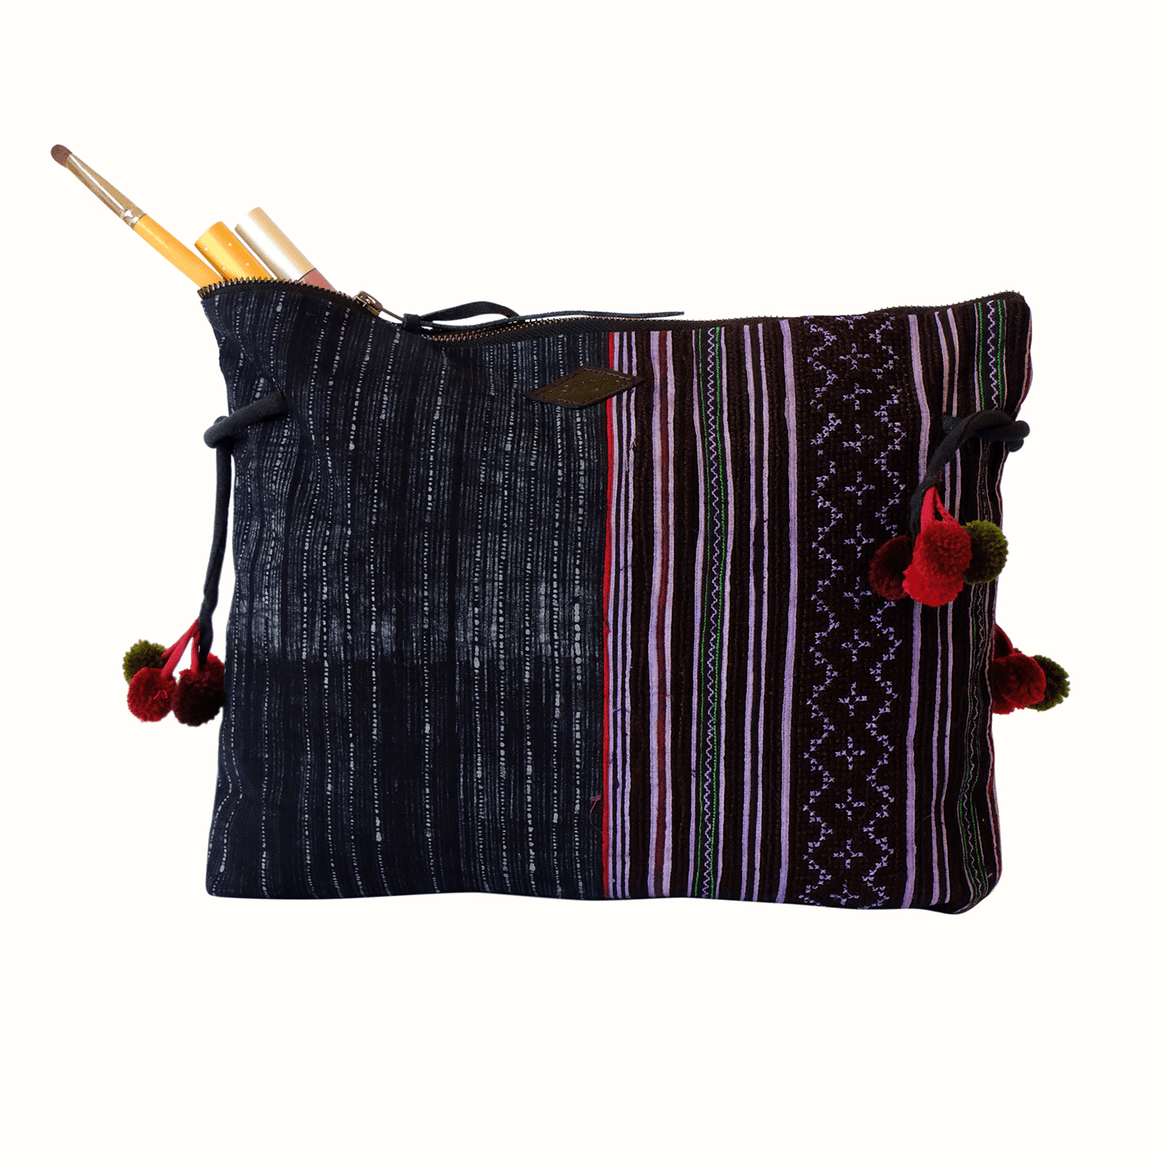 Samui Bags Full Moon Clutch Handmade Bag Thailand